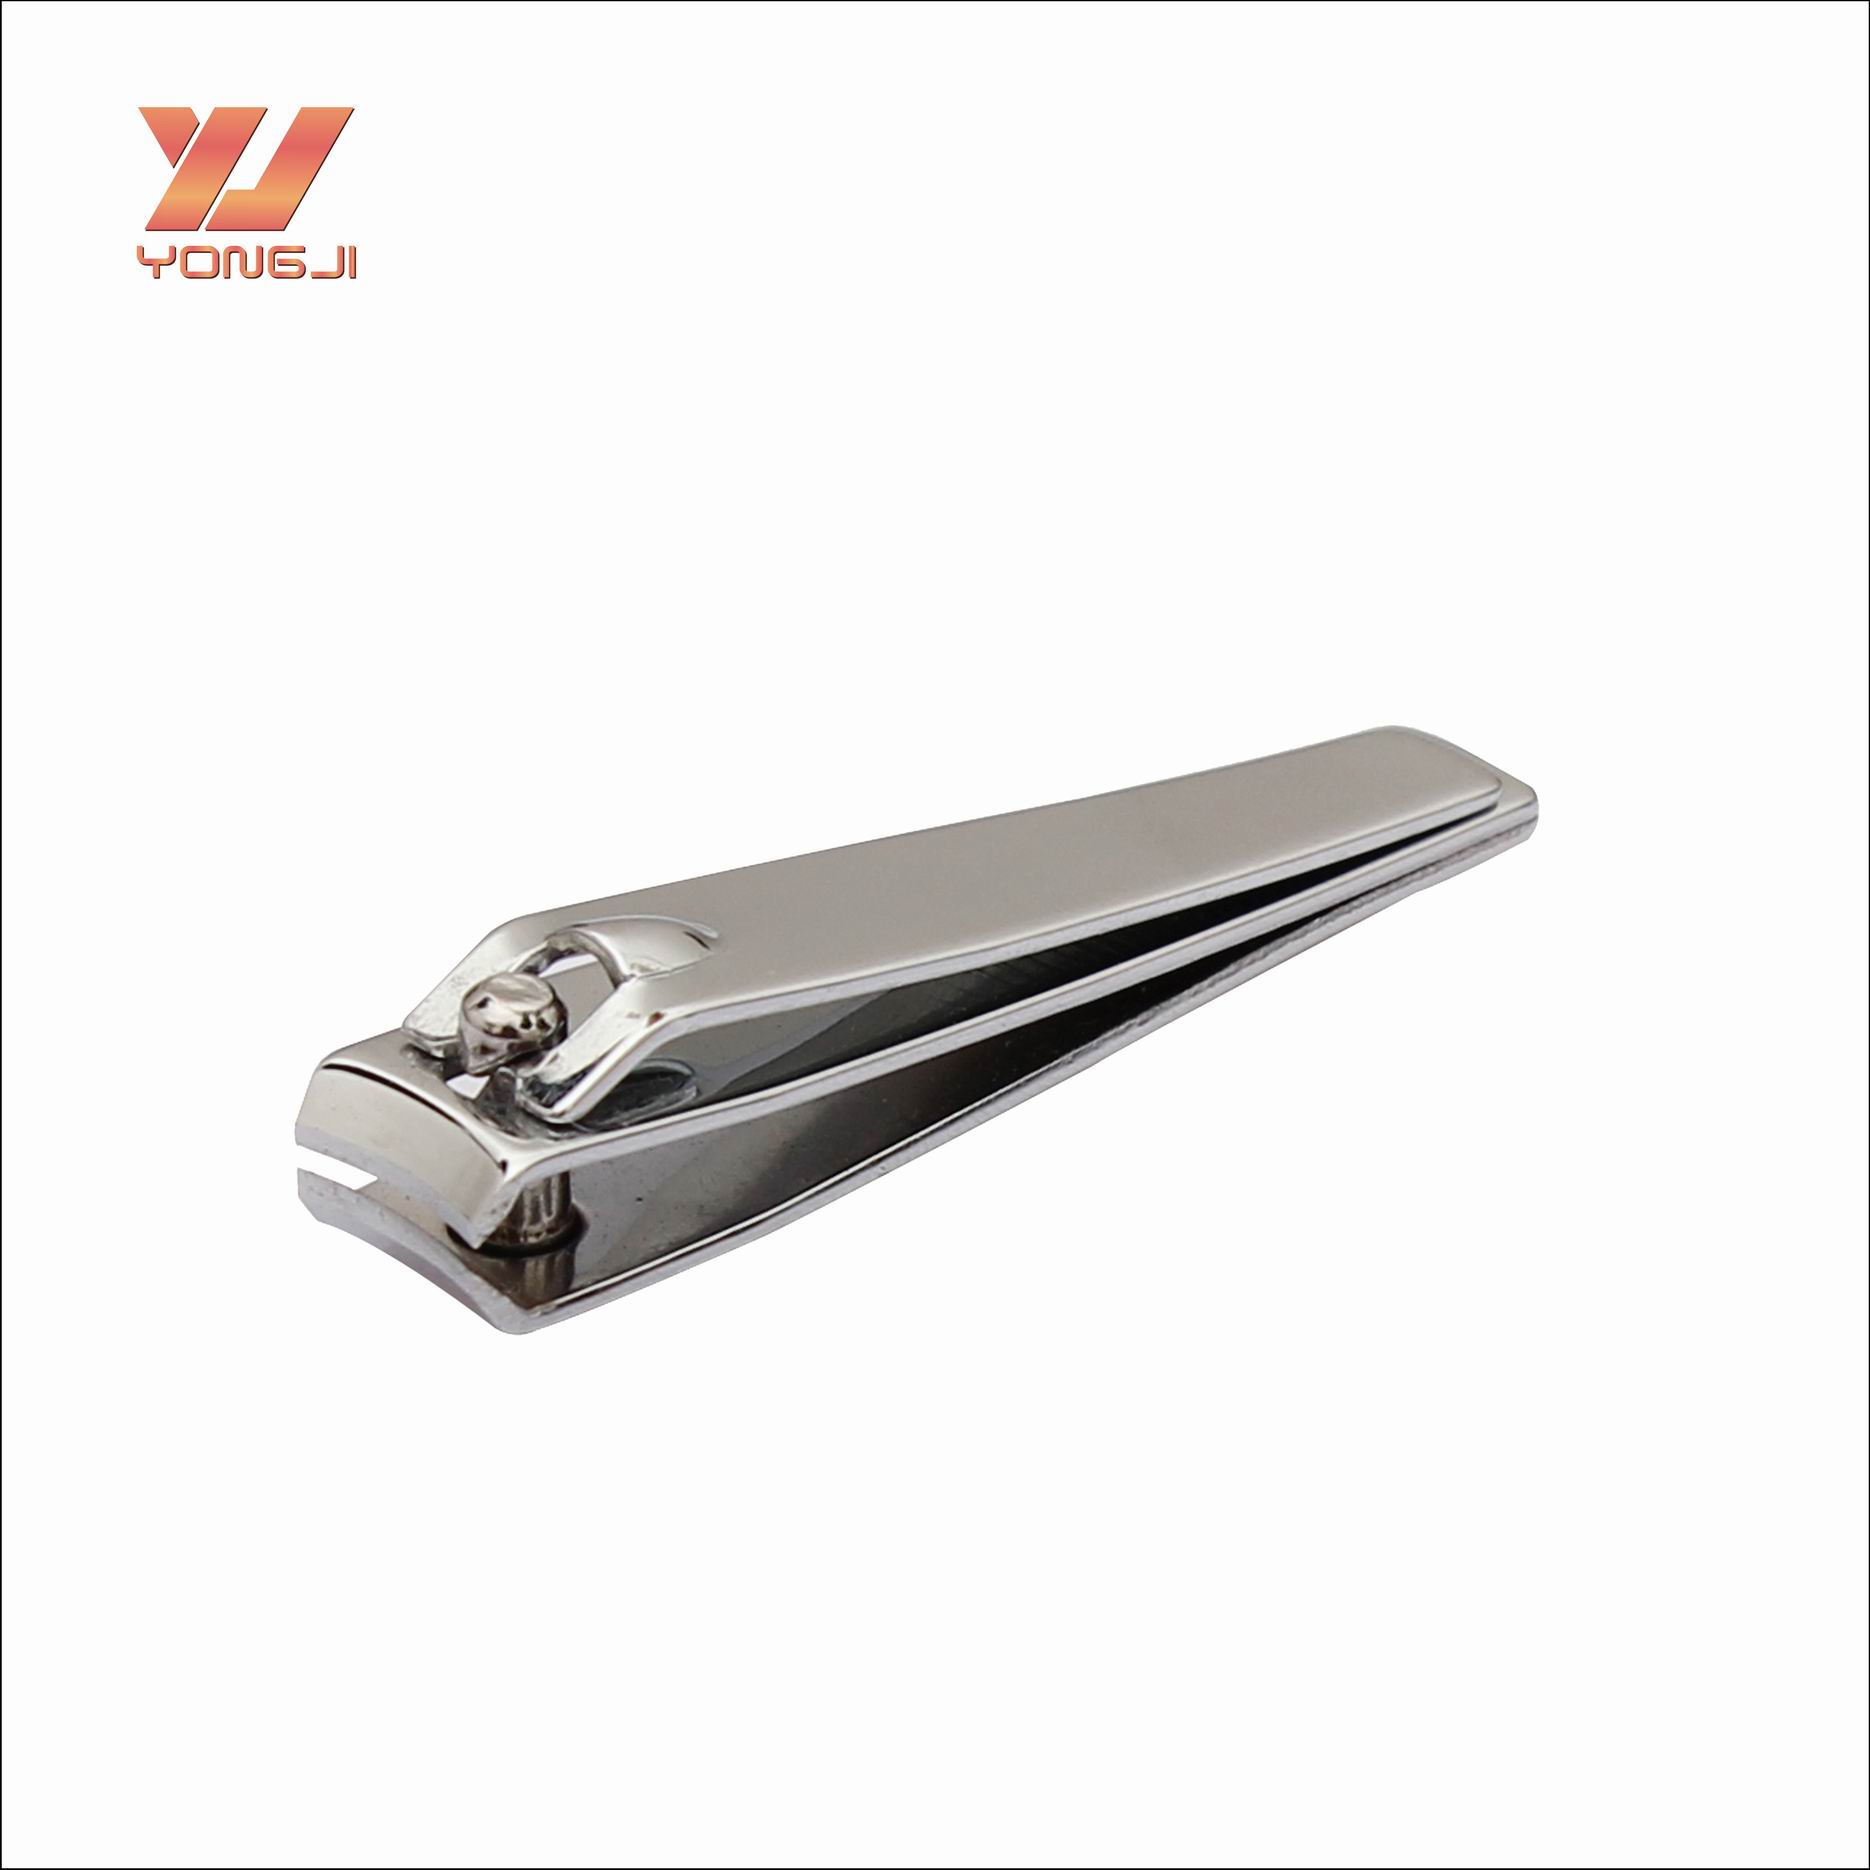 Nail Clipper Wholesale, Clippers Suppliers - Alibaba